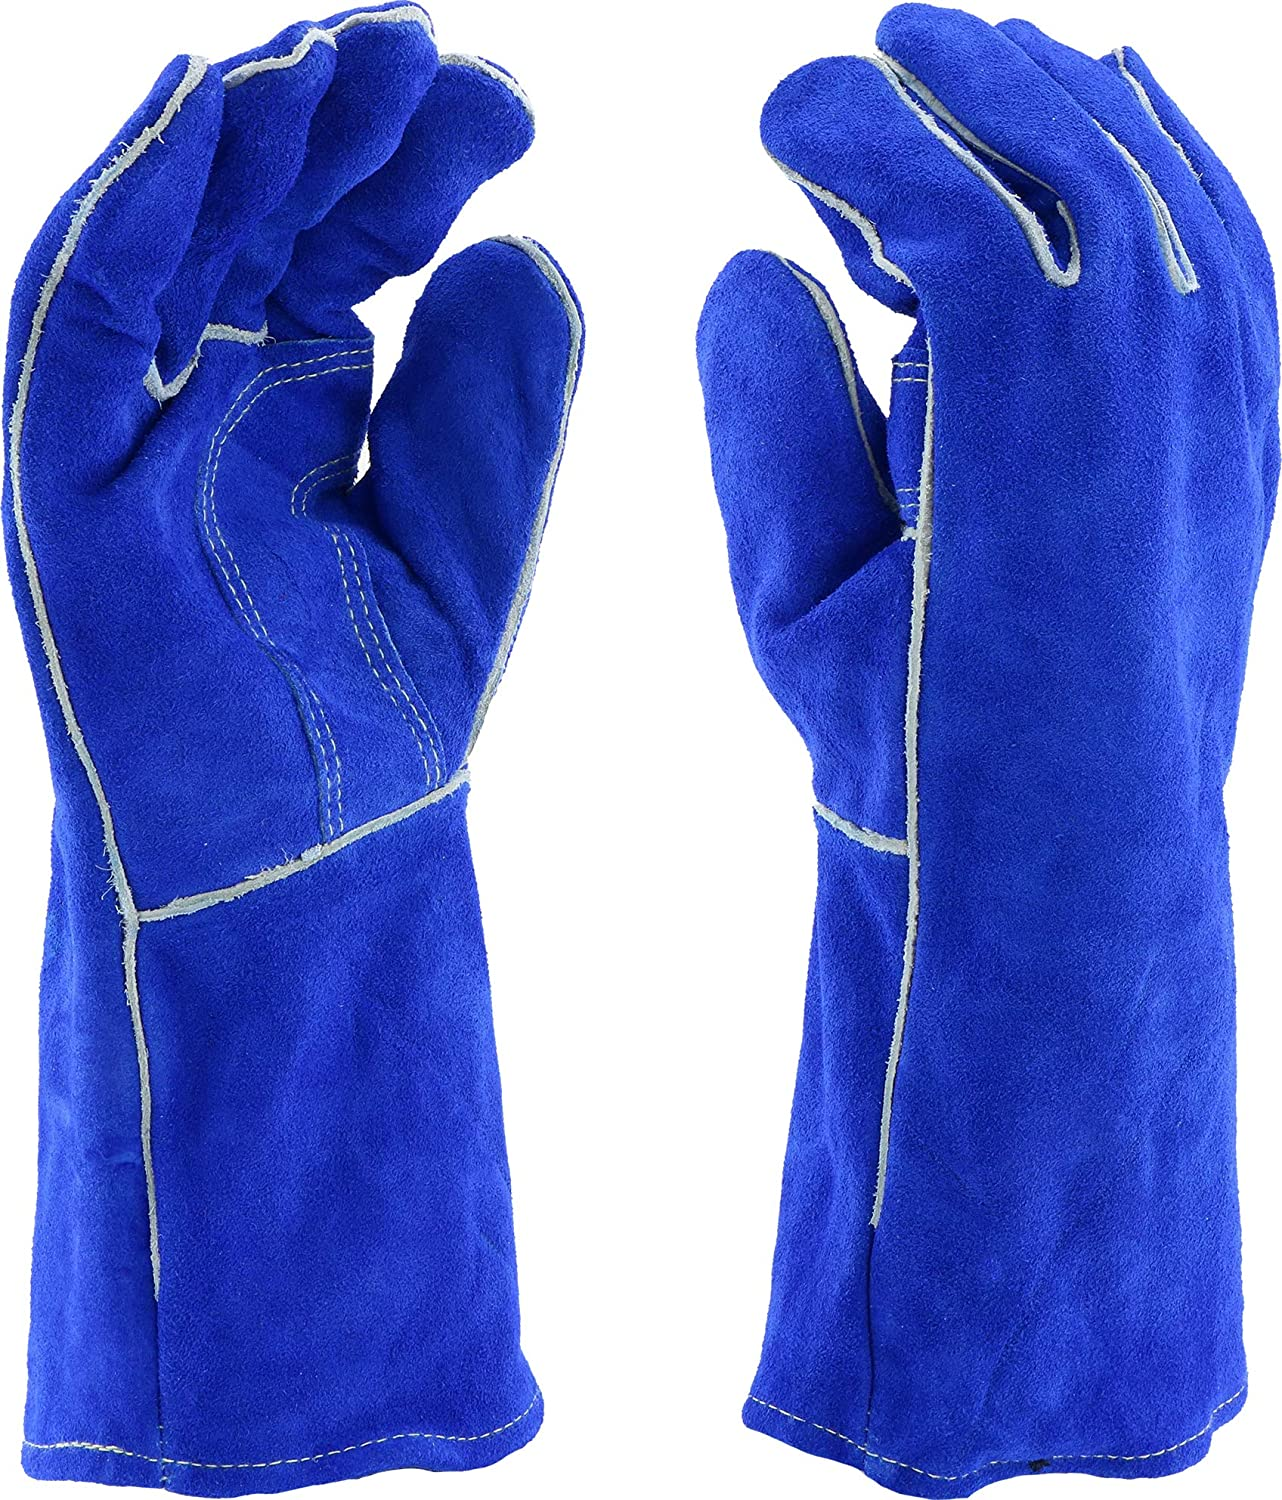 Blue Suede Cowhide Leather and Denim Large Work Gloves 10-pack